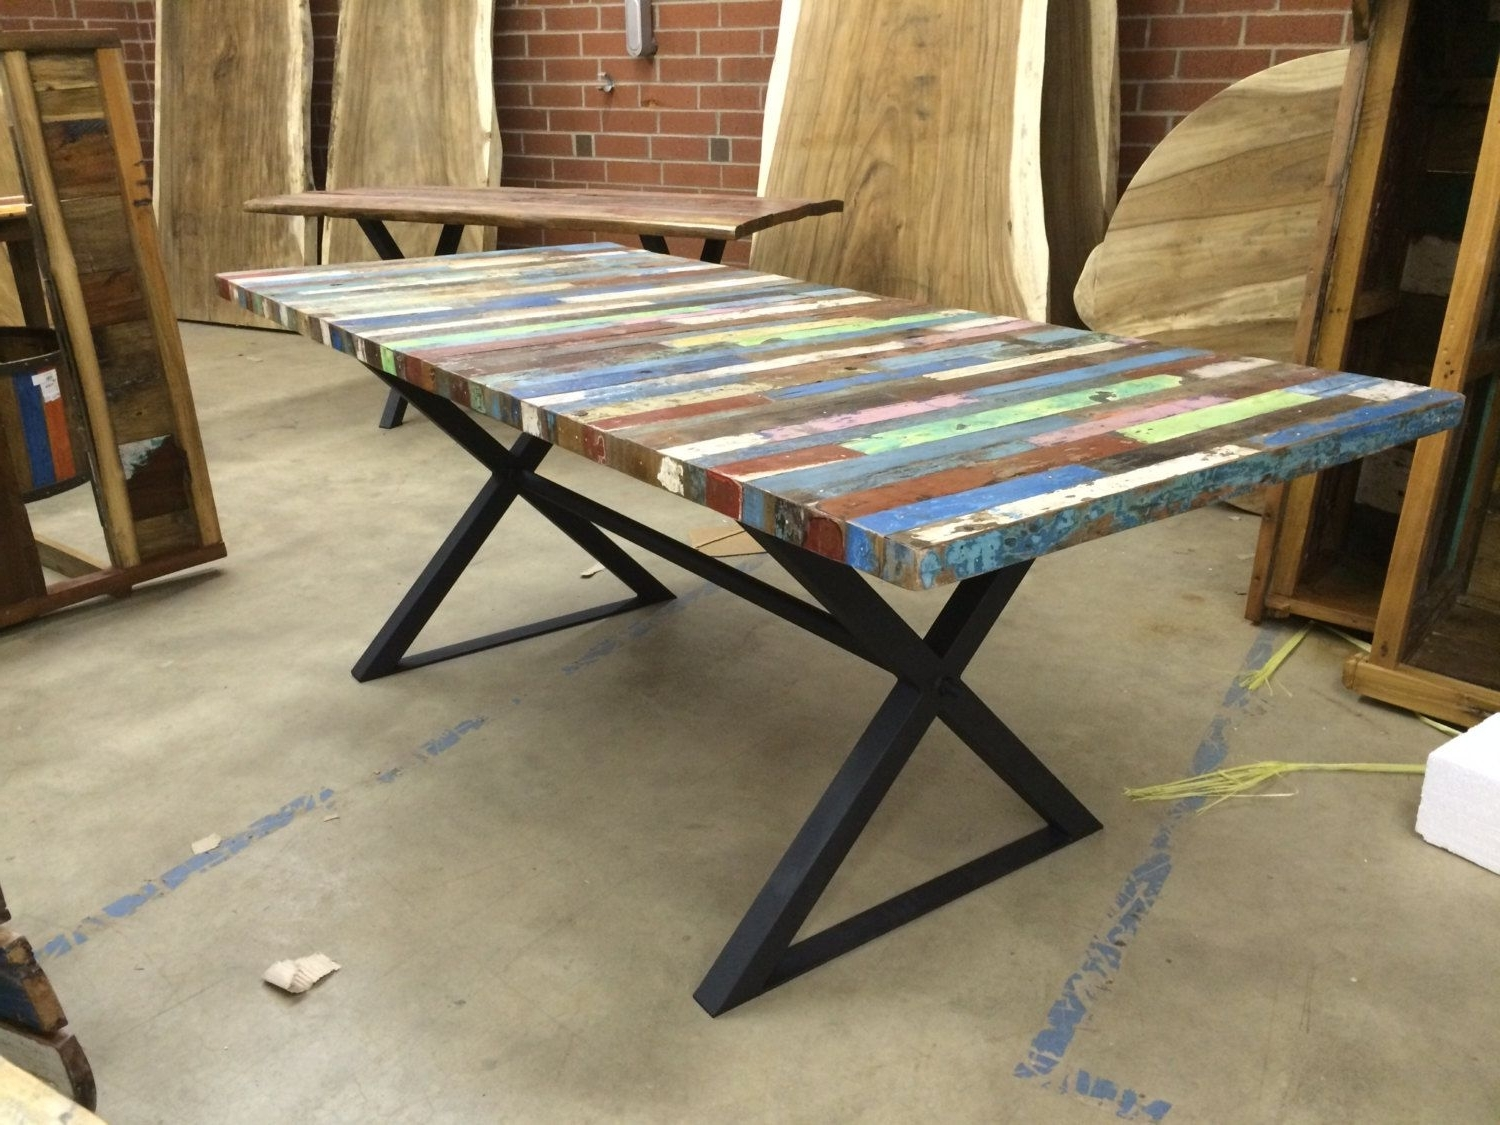 Buy A Handmade Reclaimed Dining Table, Bali Boat Wood Table, Custom Intended For Latest Bali Dining Tables (Gallery 1 of 25)